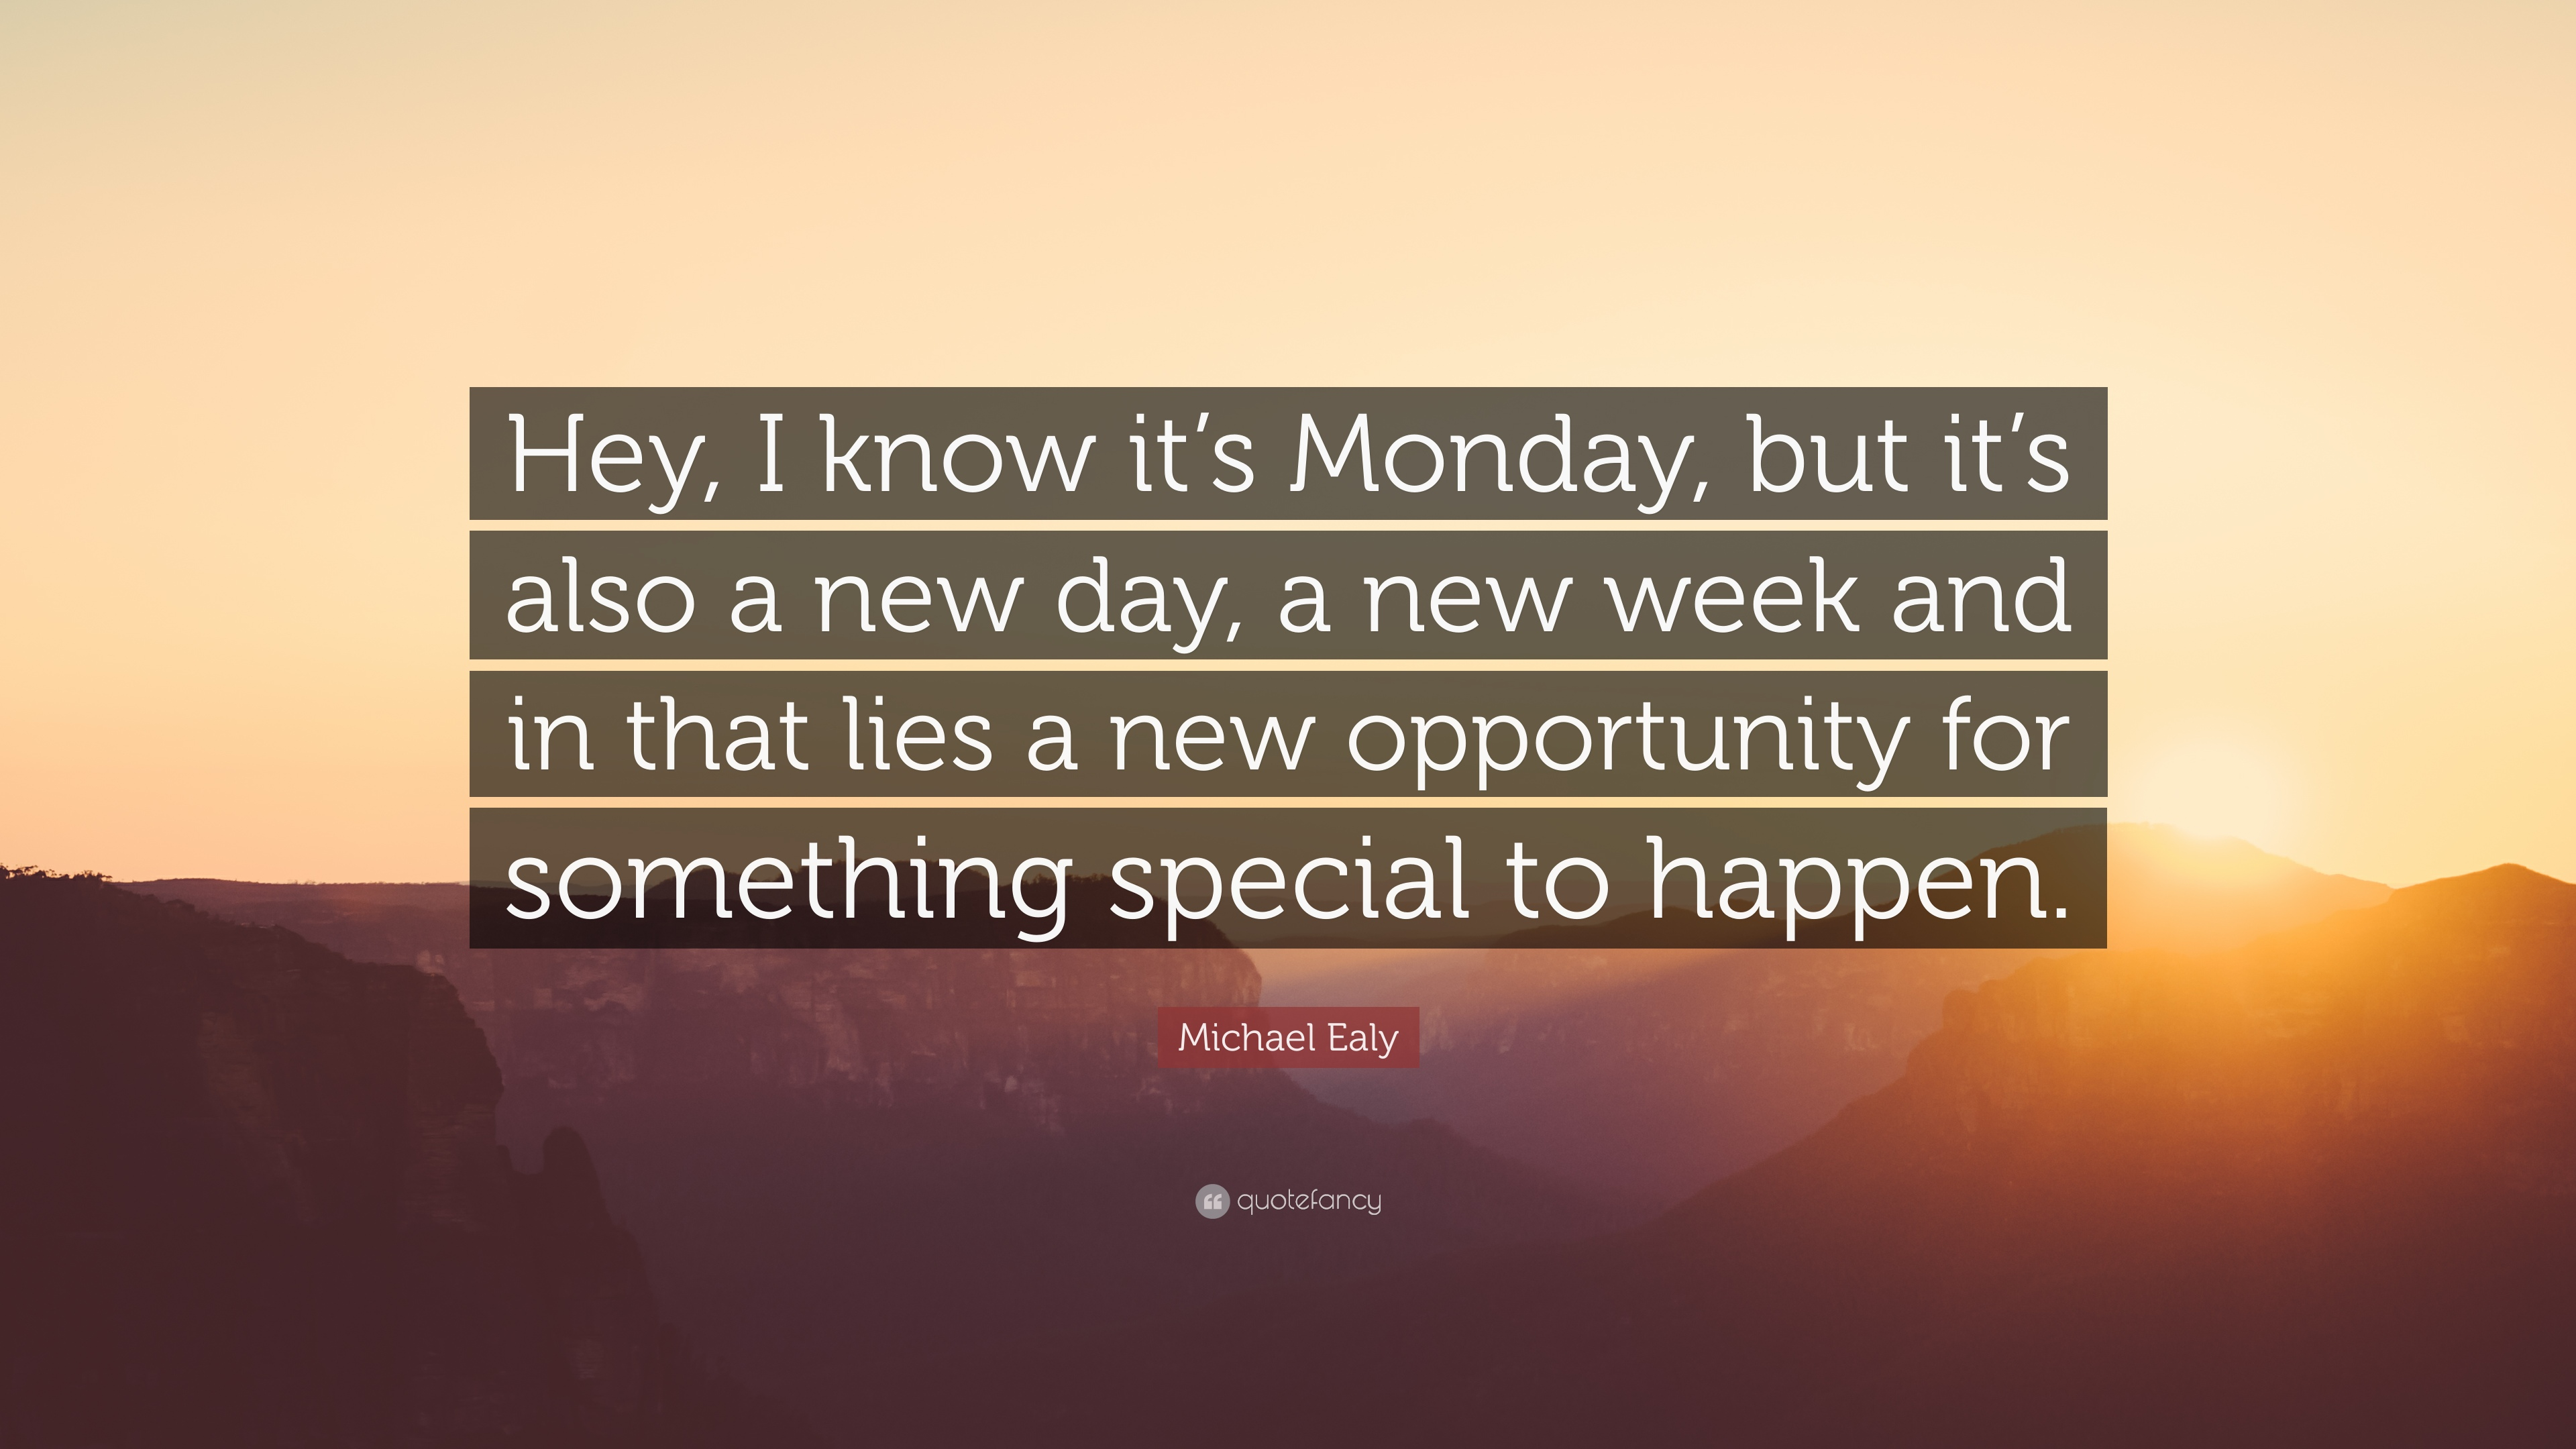 Week Quotes Michael Ealy Quotes 22 Wallpapers  Quotefancy